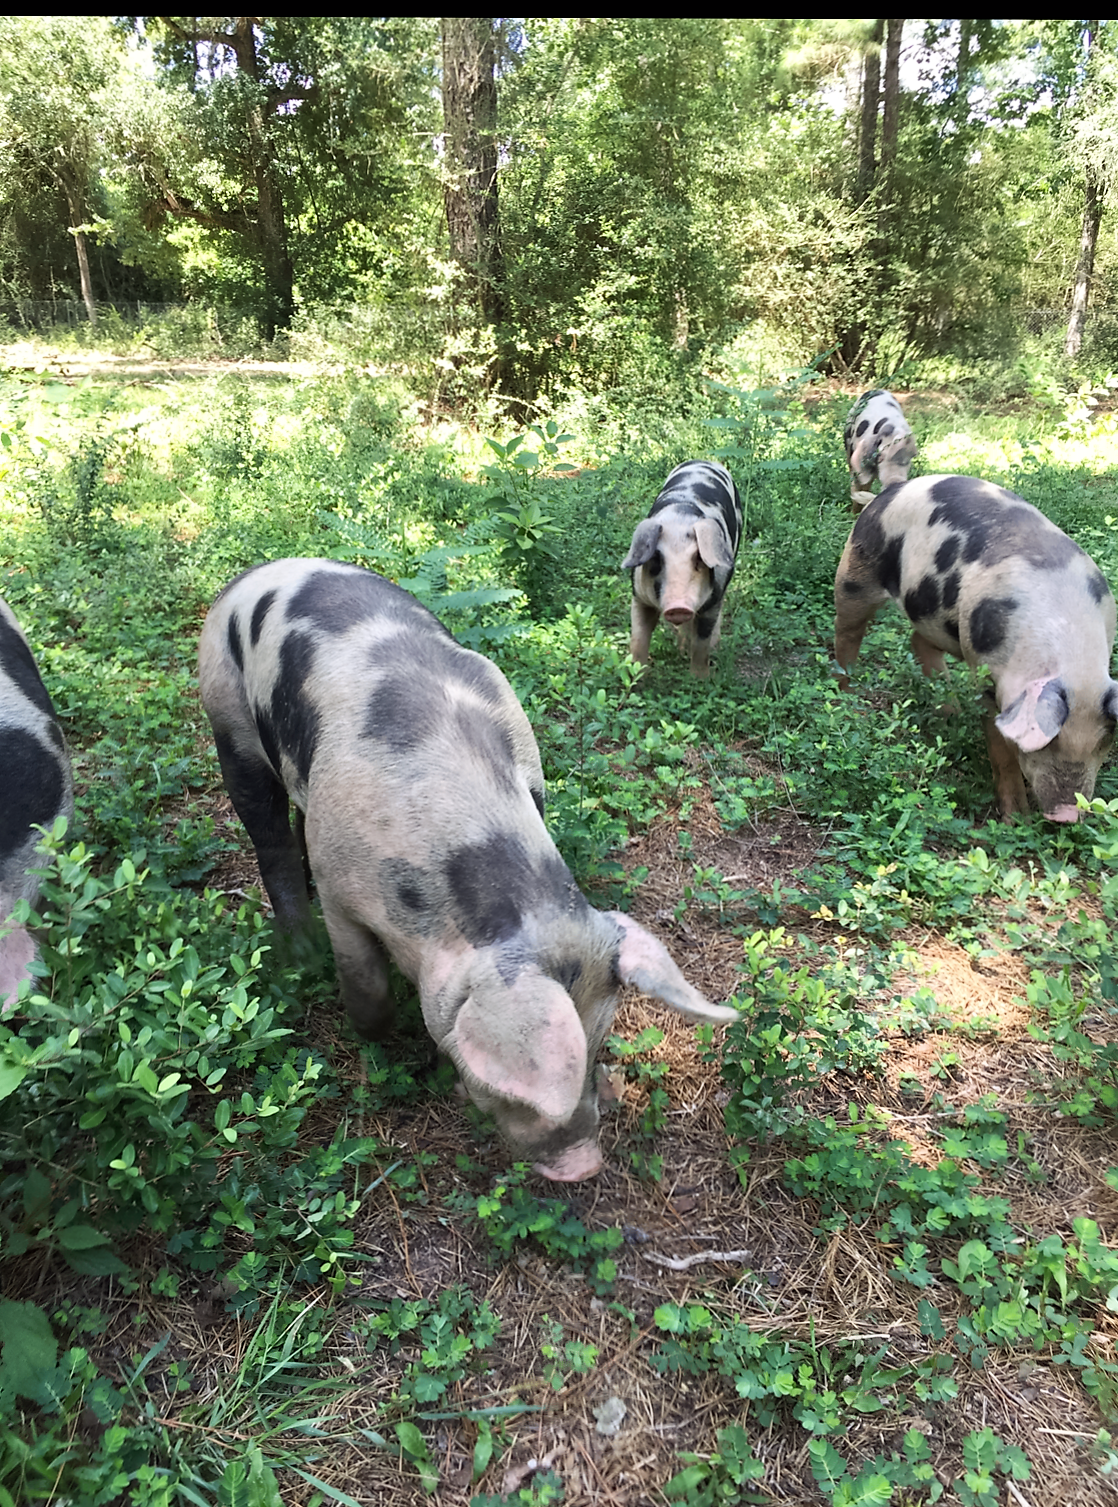 Forested Pork  Our pigs are raised as close to their natural habitat as possible. They are not given any antibiotics or growth hormones to ensure the best quality meat possible.